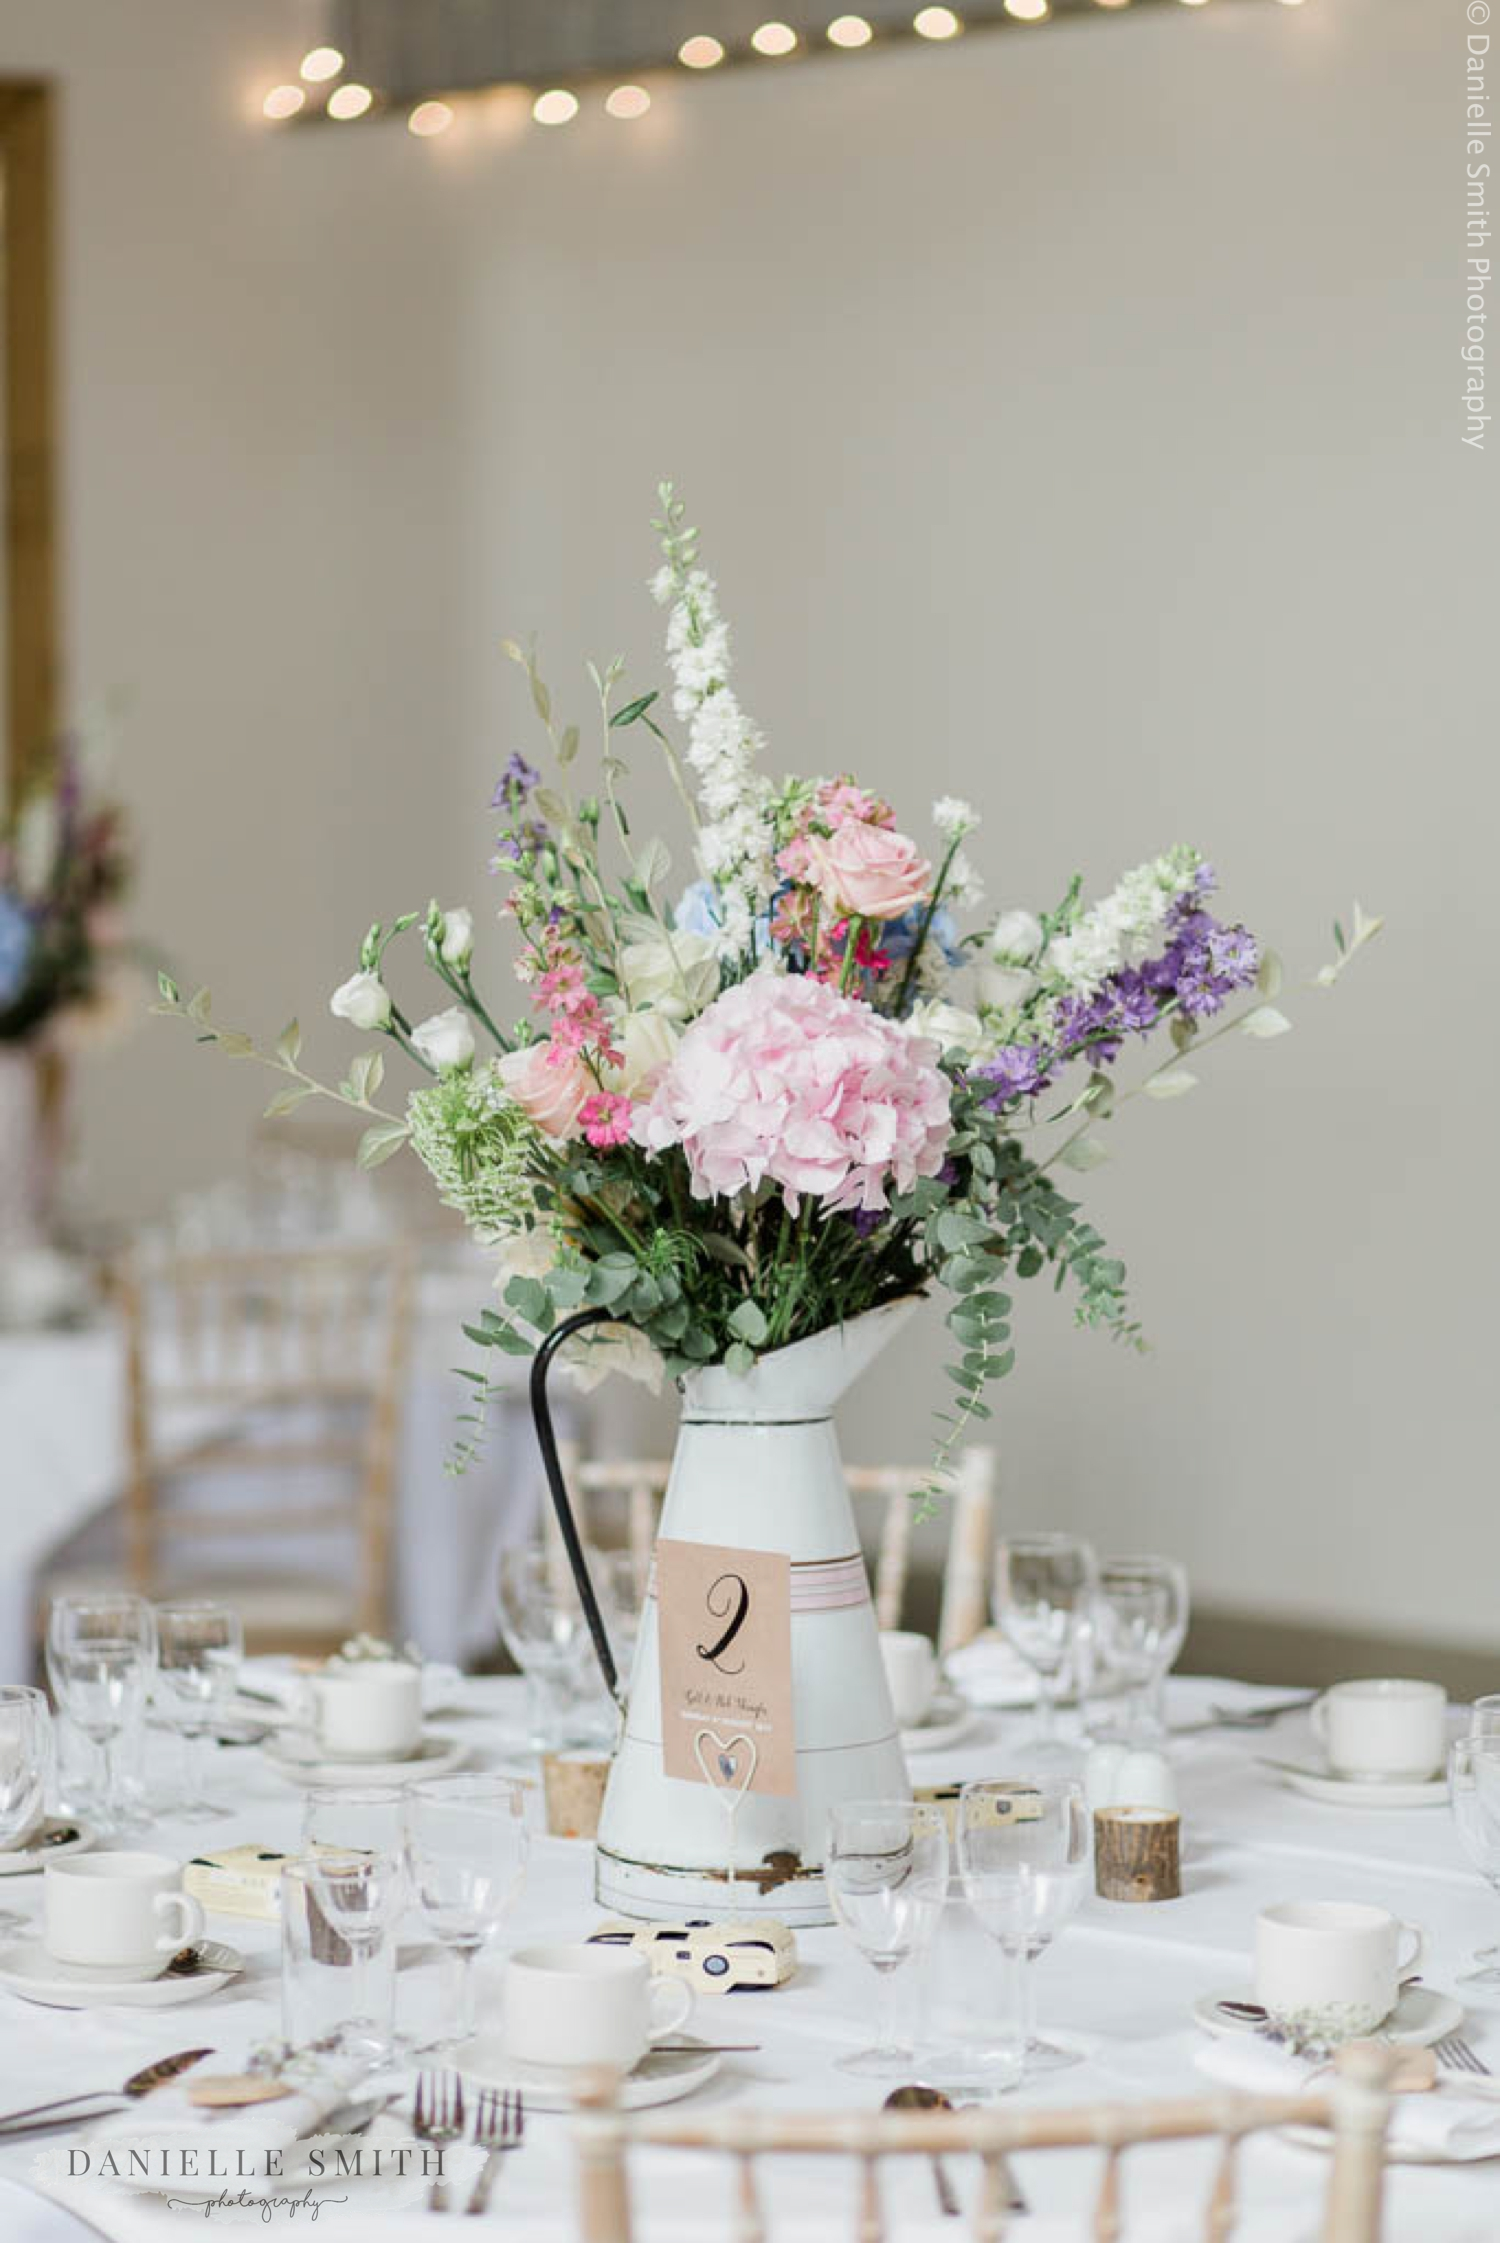 pastel flowers in jug on wedding table